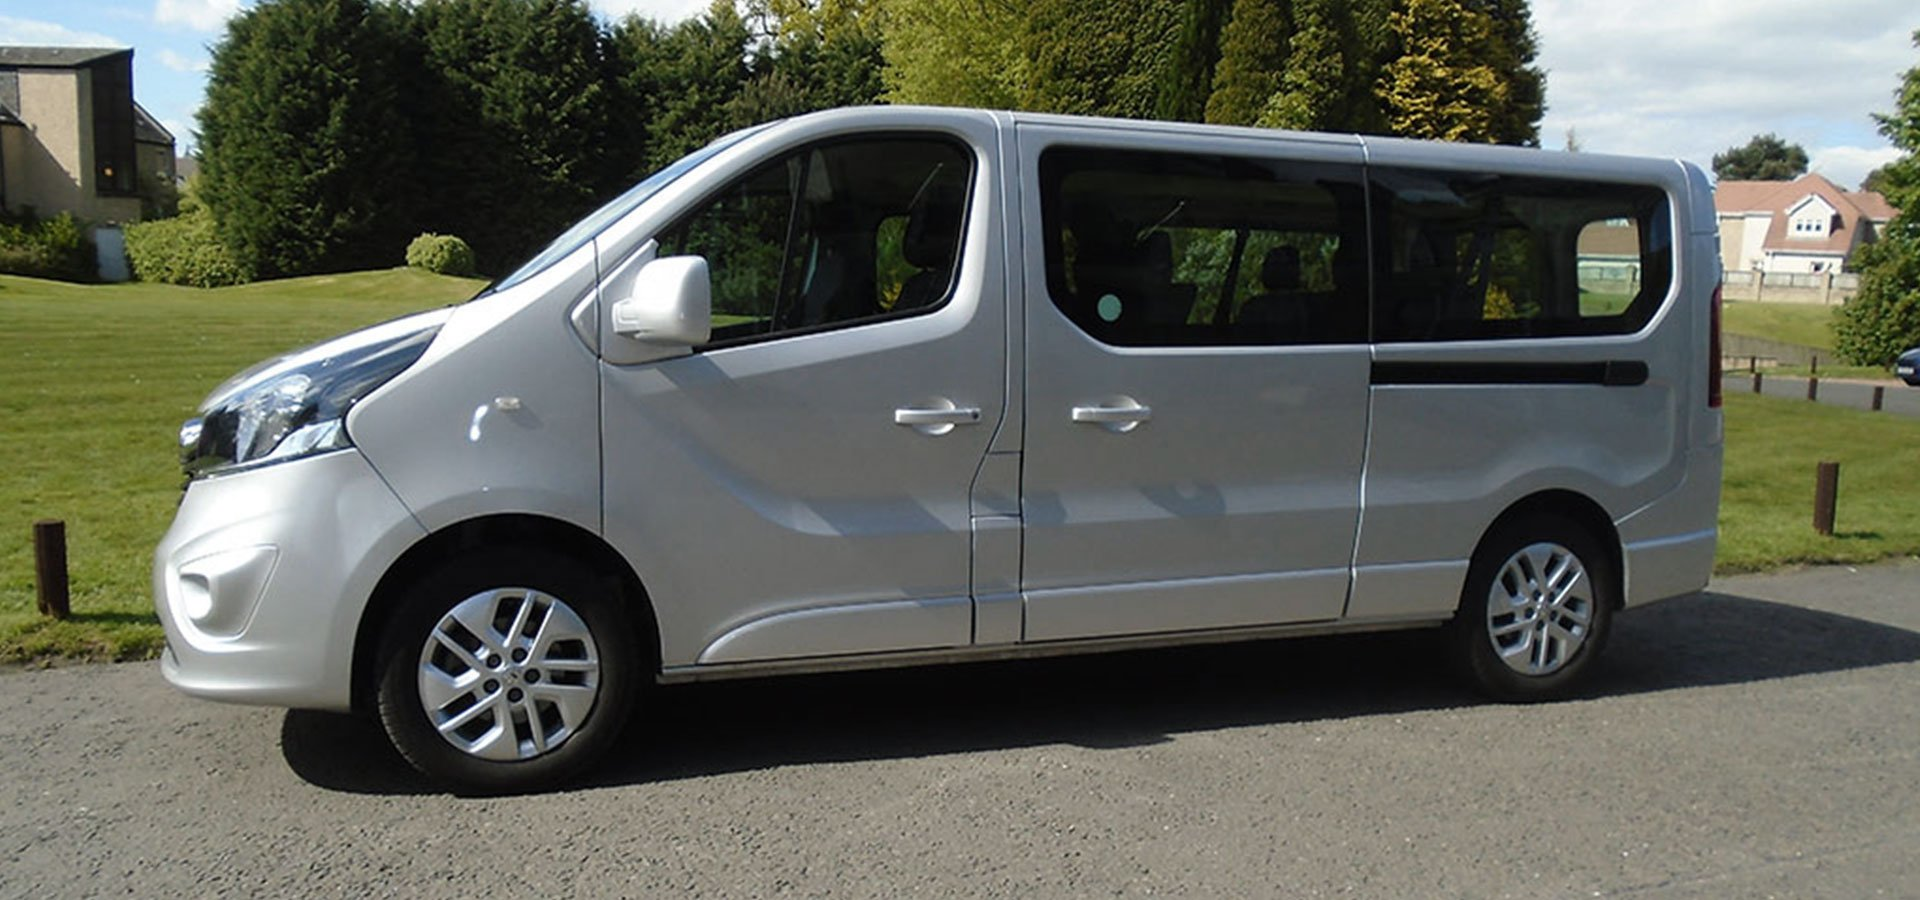 Orca Travel 6 Seater van